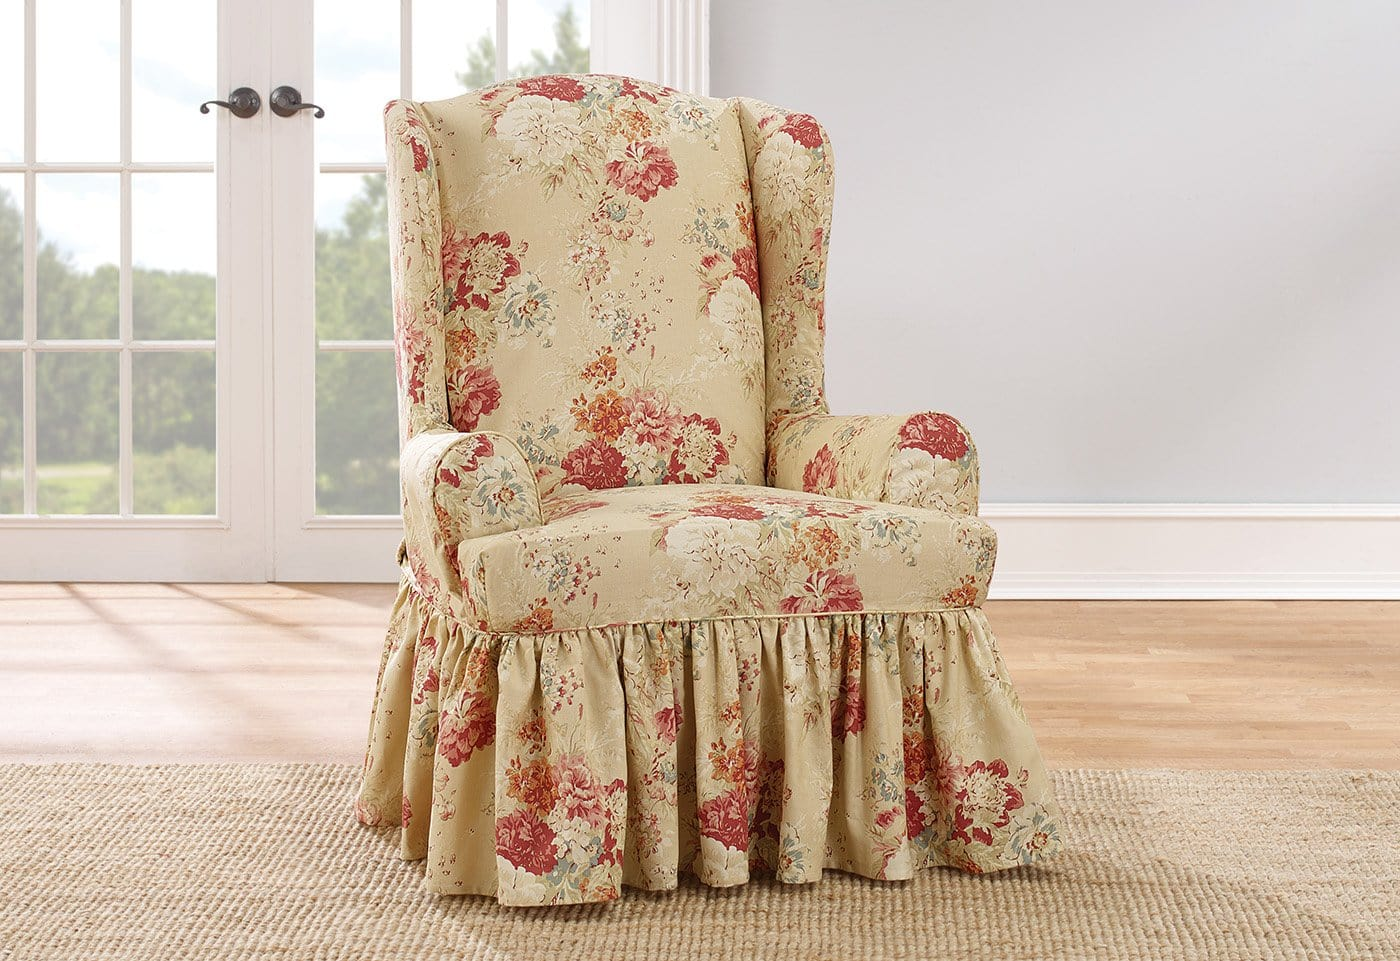 Ballad Bouquet By Waverly One Piece Wing Chair Slipcover Ruffled Skirt 100% Cotton Machine Washable - Wing Chair / T-Cushion / Blush